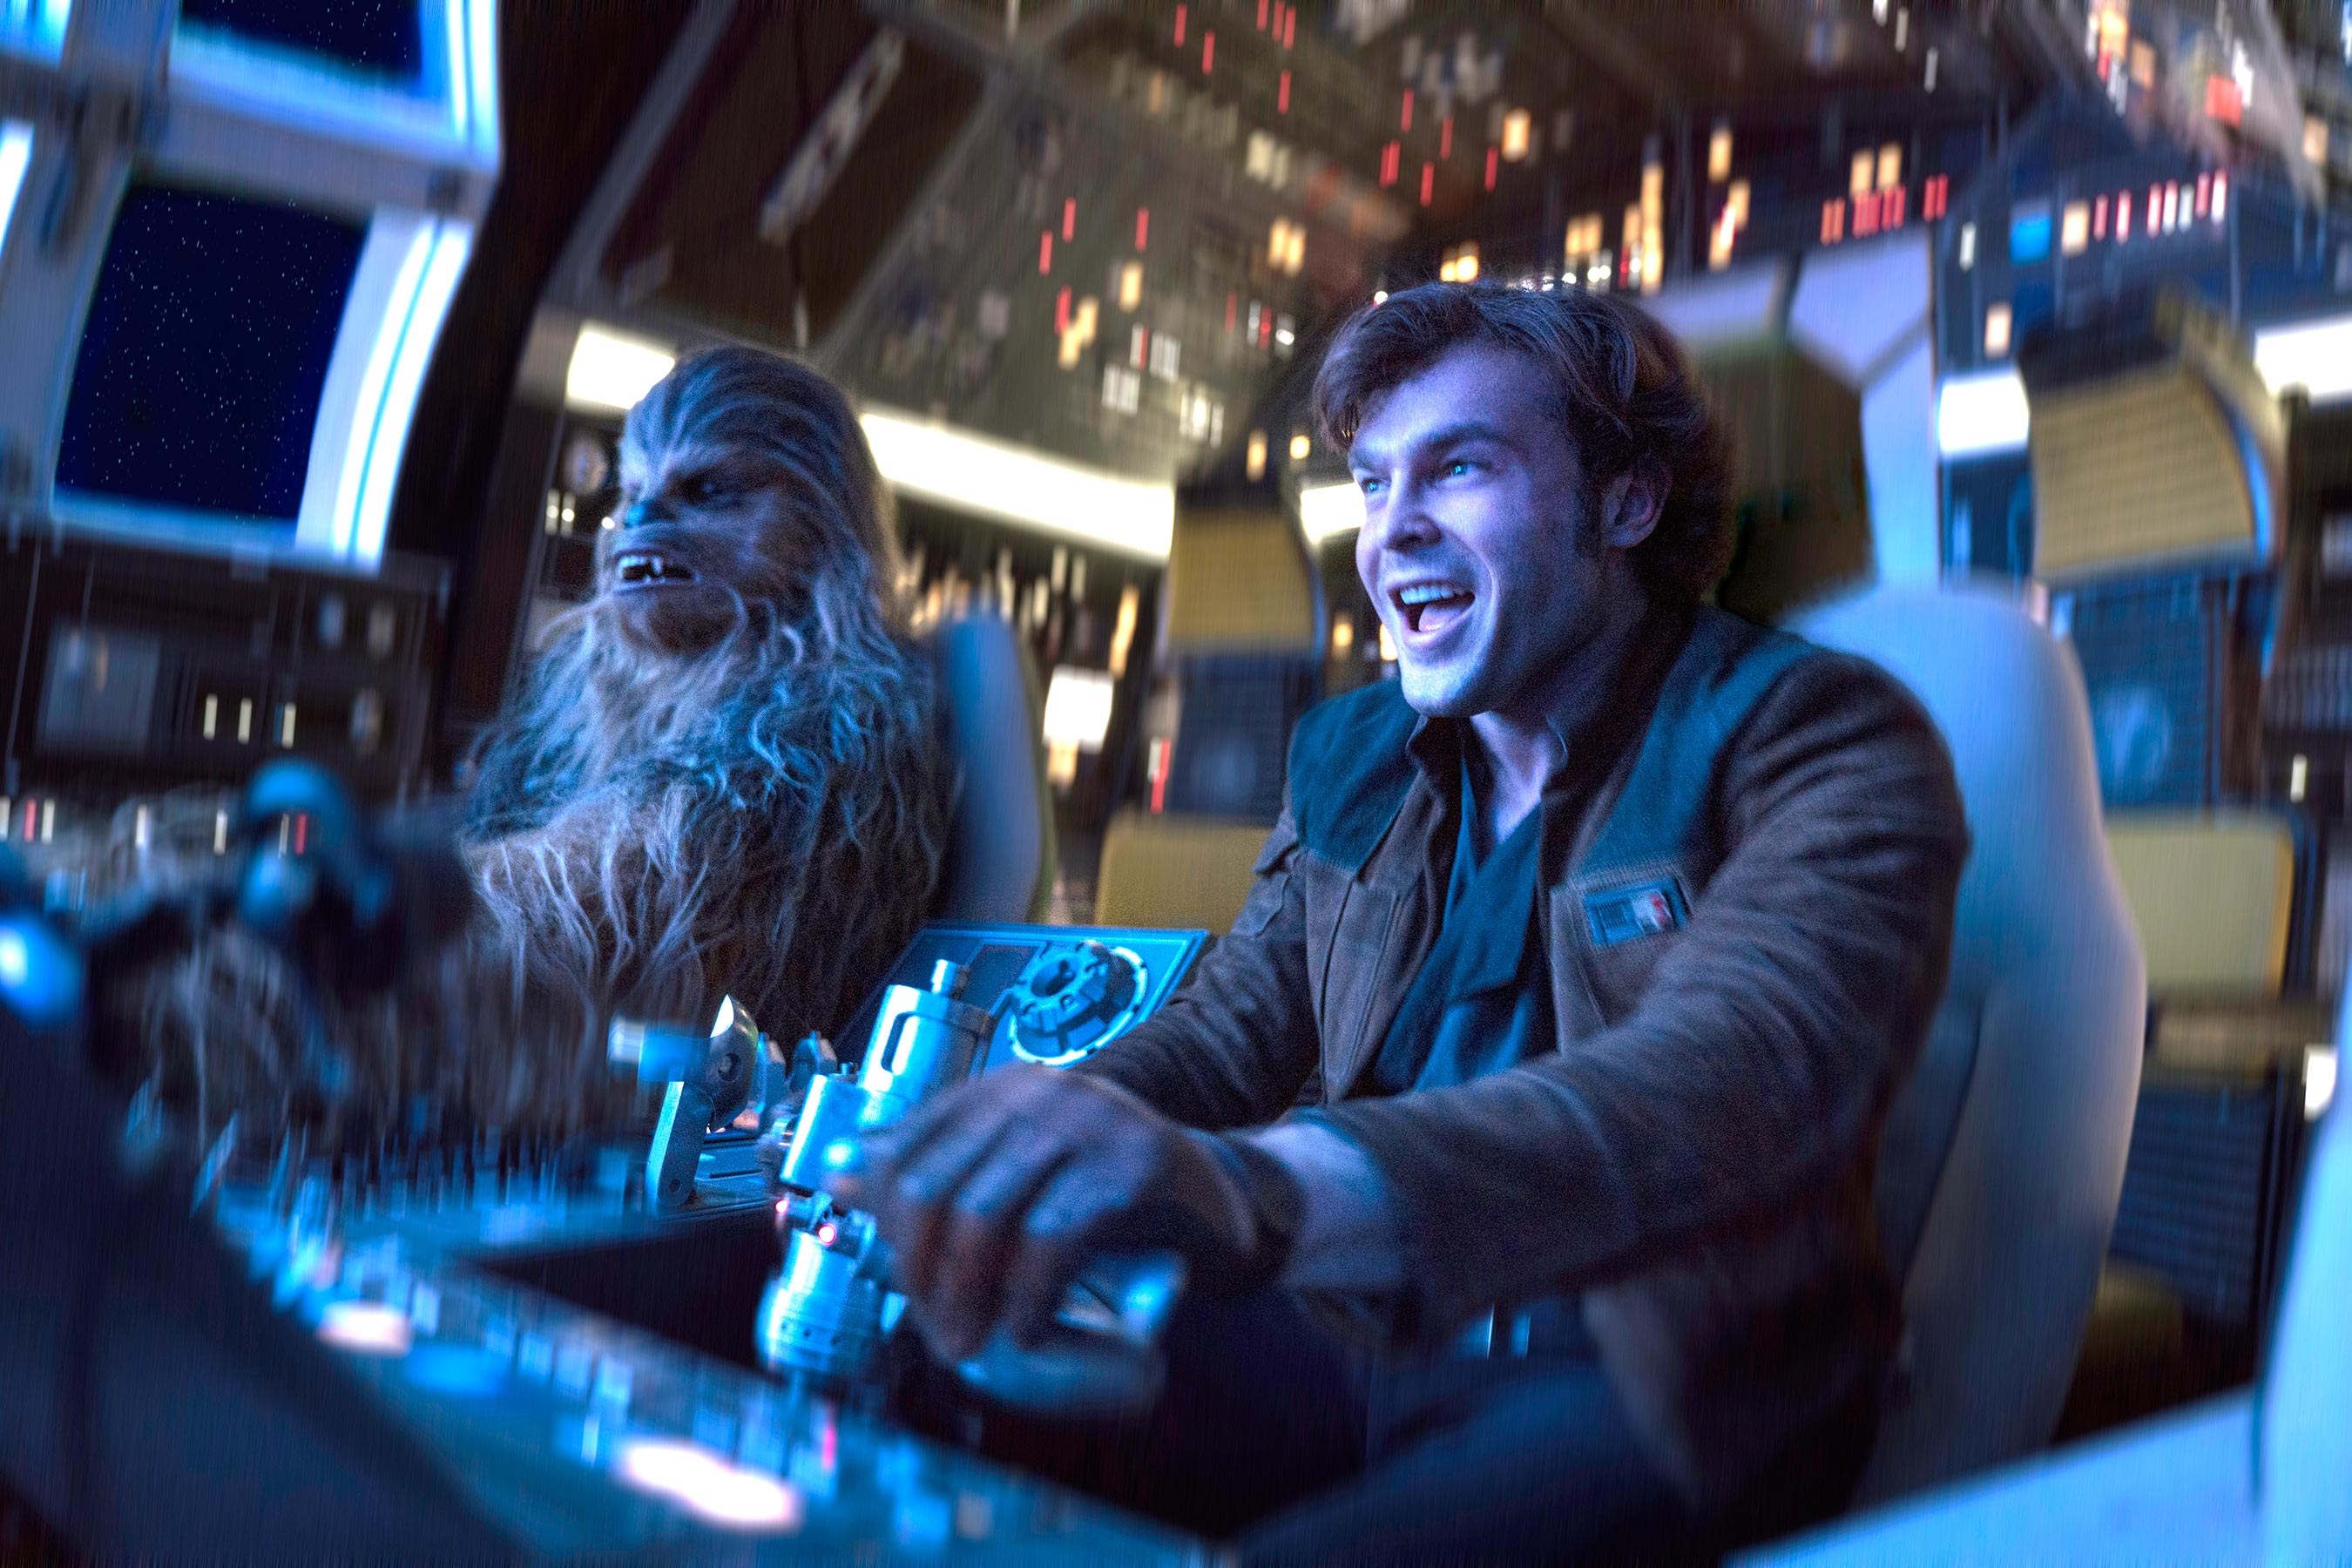 Chewbacca (Joonas Suotamo) and Han Solo (Alden Ehrenreich) pilot the Millennium Falcon for the first time in Solo: A Star Wars Story (2018)